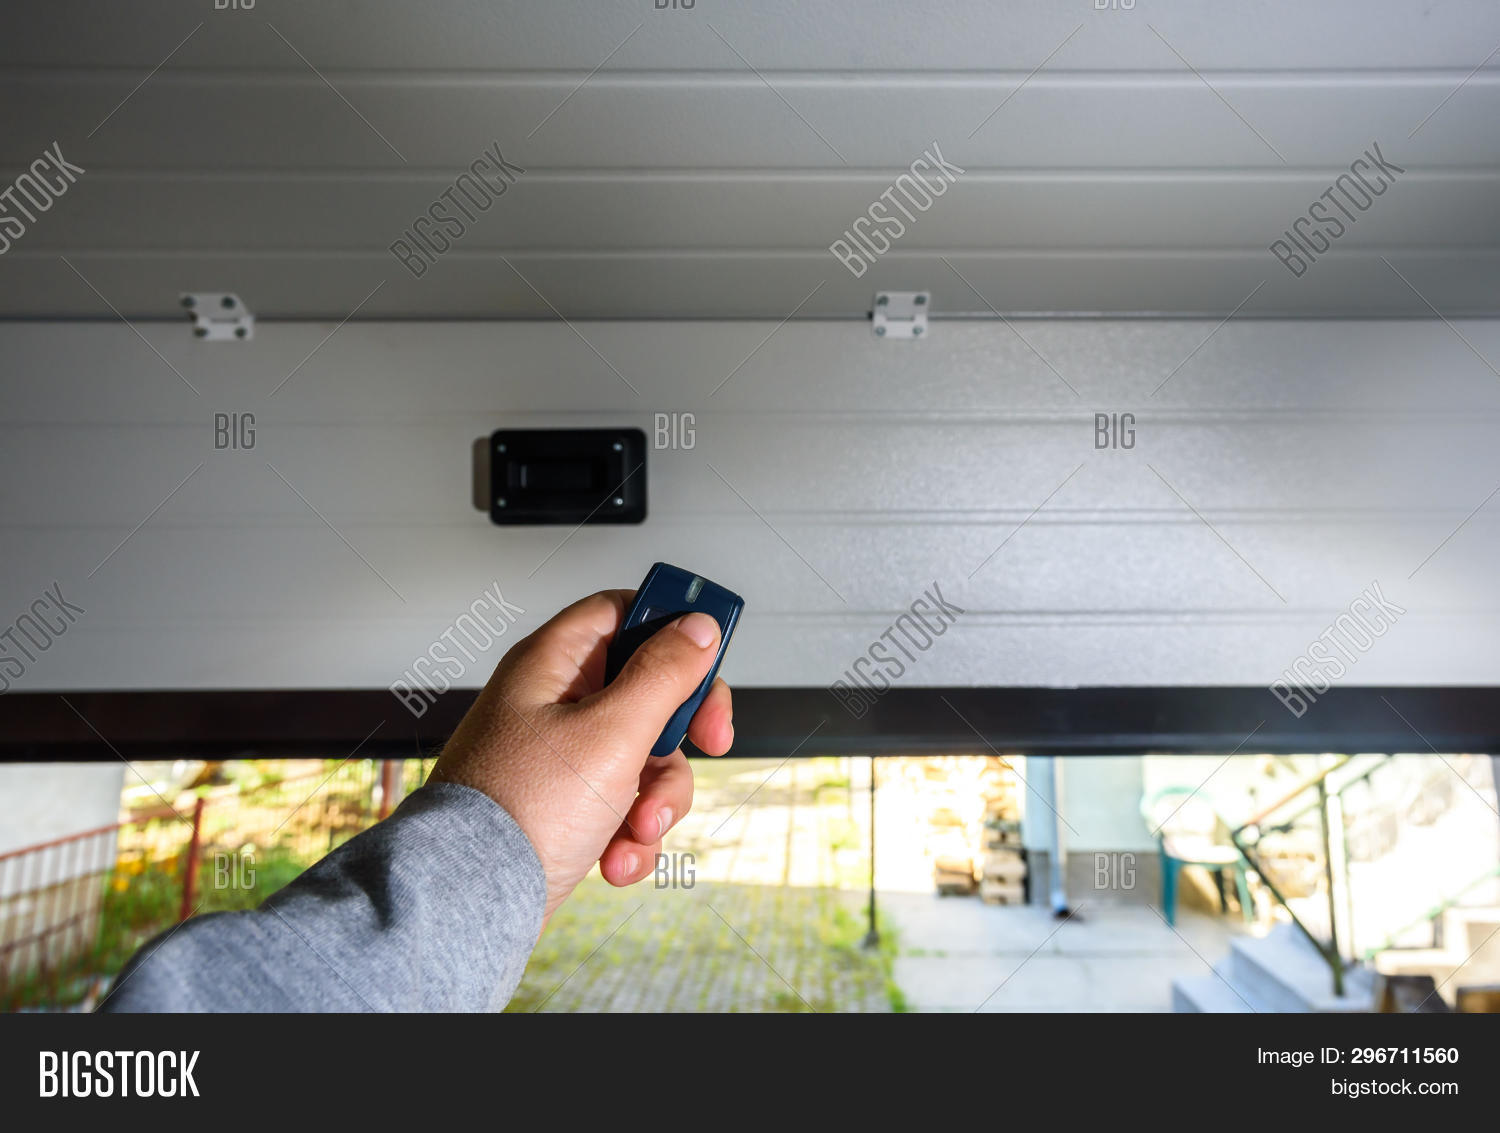 architecture,automatic,building,car,construction,controller,design,door,driveway,dwelling,electricity,estate,front,garage,hand,home,house,large,luxury,modern,mortgage,opened,plastic,pvc,real,remote,suburbs,wireless